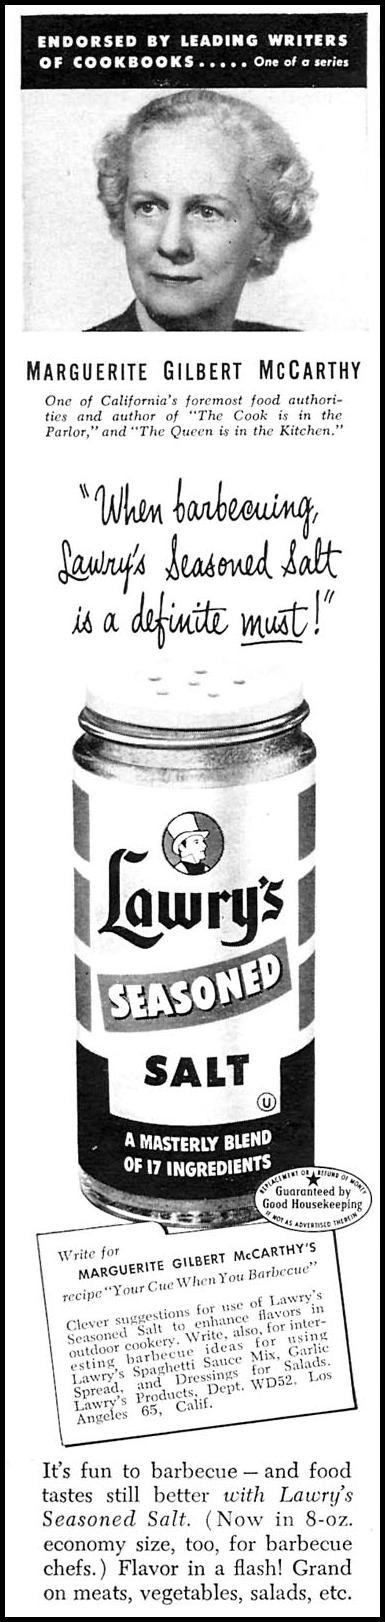 LAWRY'S SEASONED SALT WOMAN'S DAY 06/01/1958 p. 10